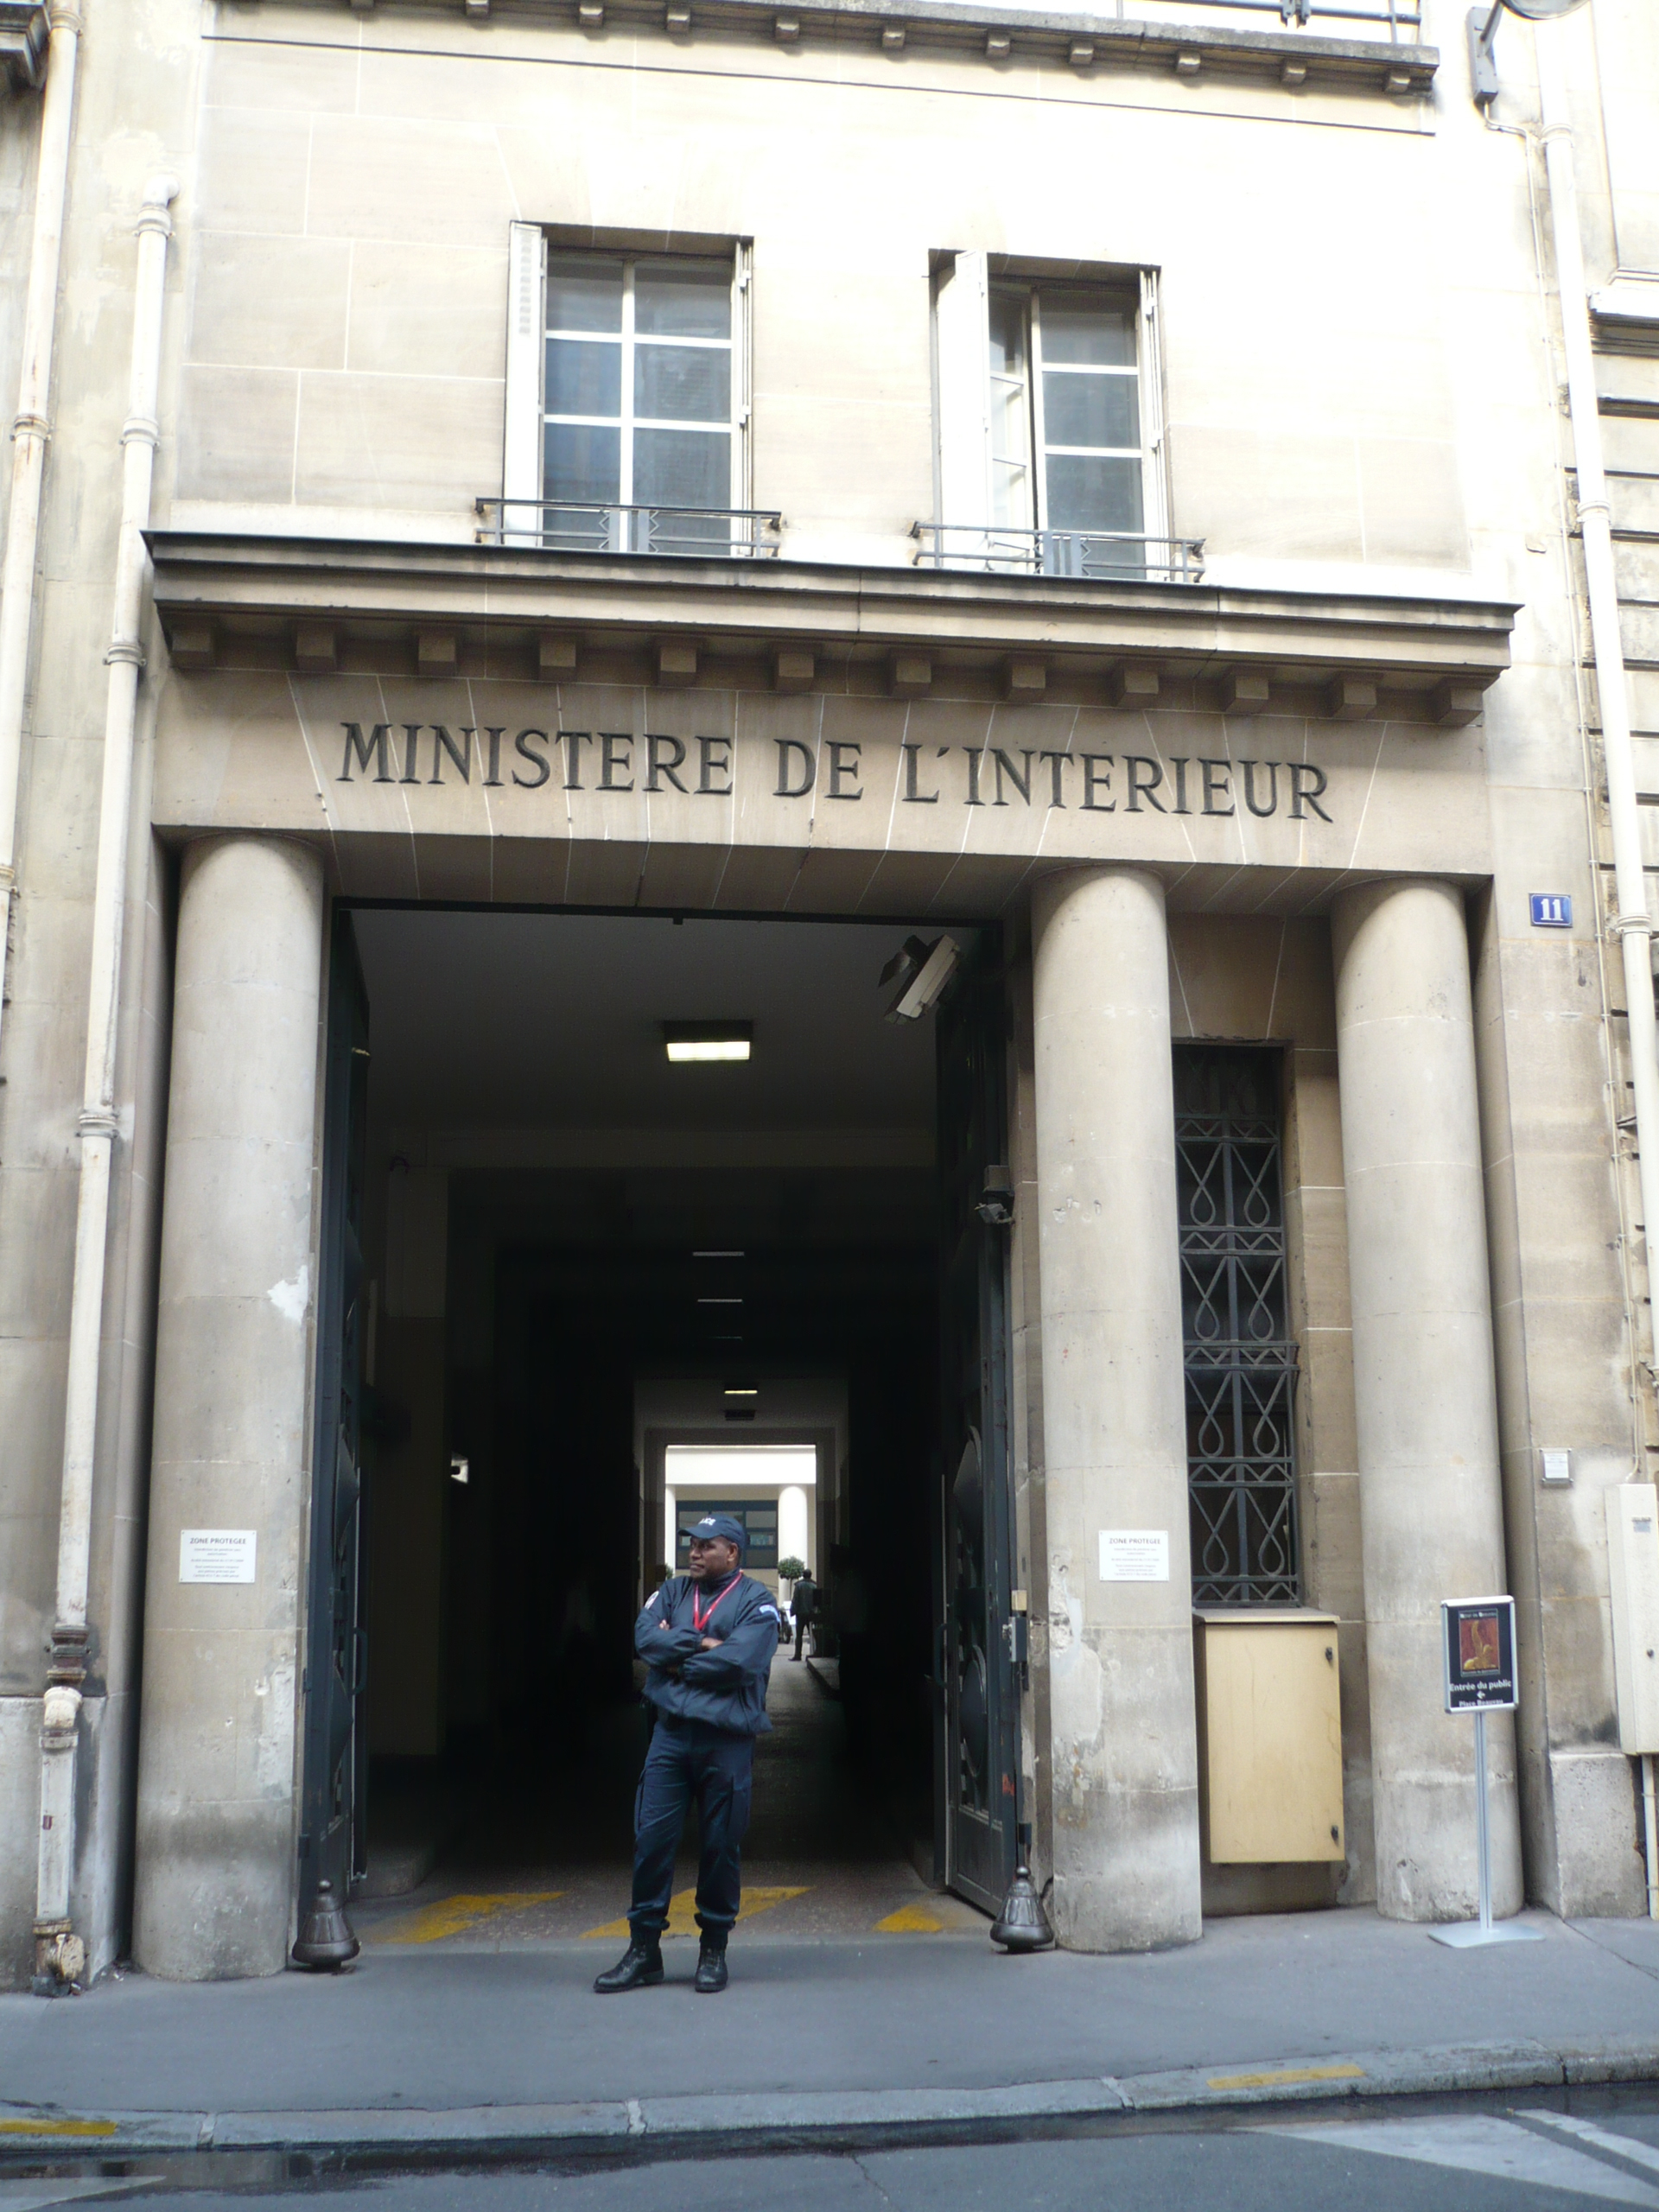 https://upload.wikimedia.org/wikipedia/commons/9/94/Minist%C3%A8re_fran%C3%A7ais_de_l%27Int%C3%A9rieur%2C_rue_des_Saussaies.jpg